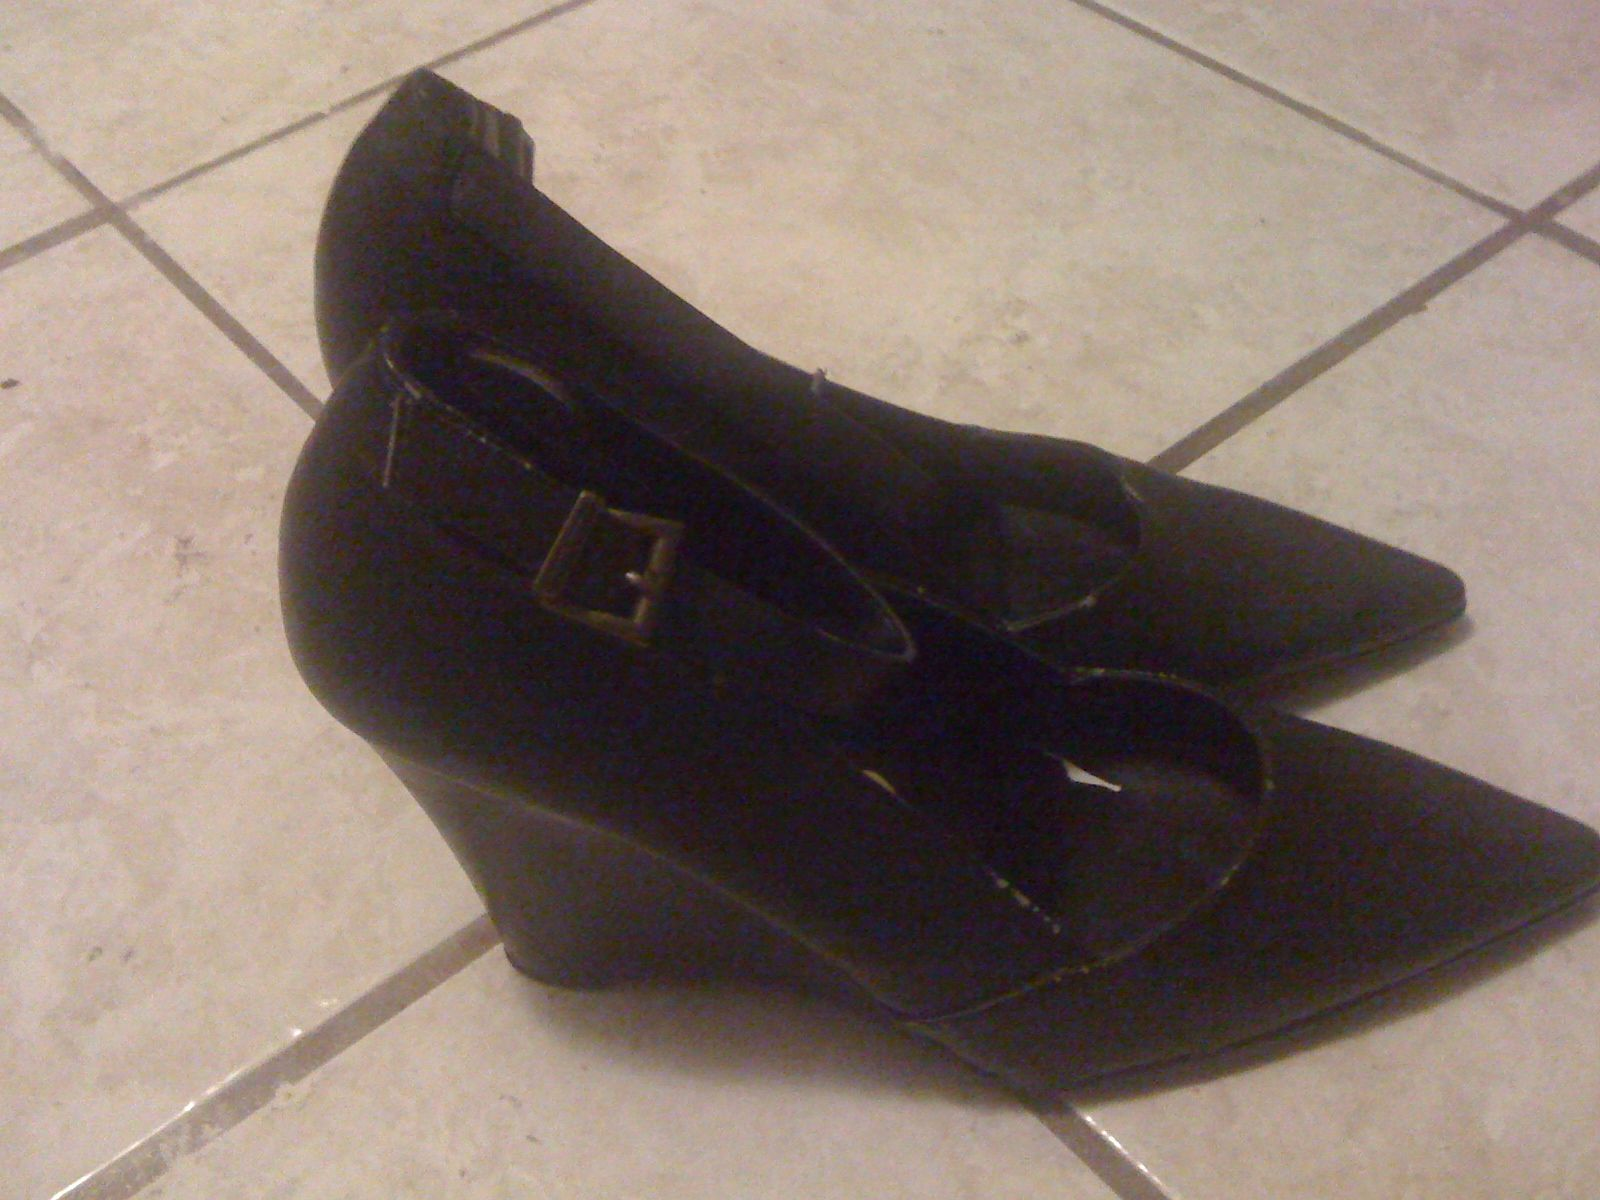 Ladies Shoes Size 8 1/2 in StealofaDeal's Garage Sale in Lake Charles , LA for $3. Ladies brown shoes, size 8 1/2, very good condition. Call 337-515-9054 or email [email removed]